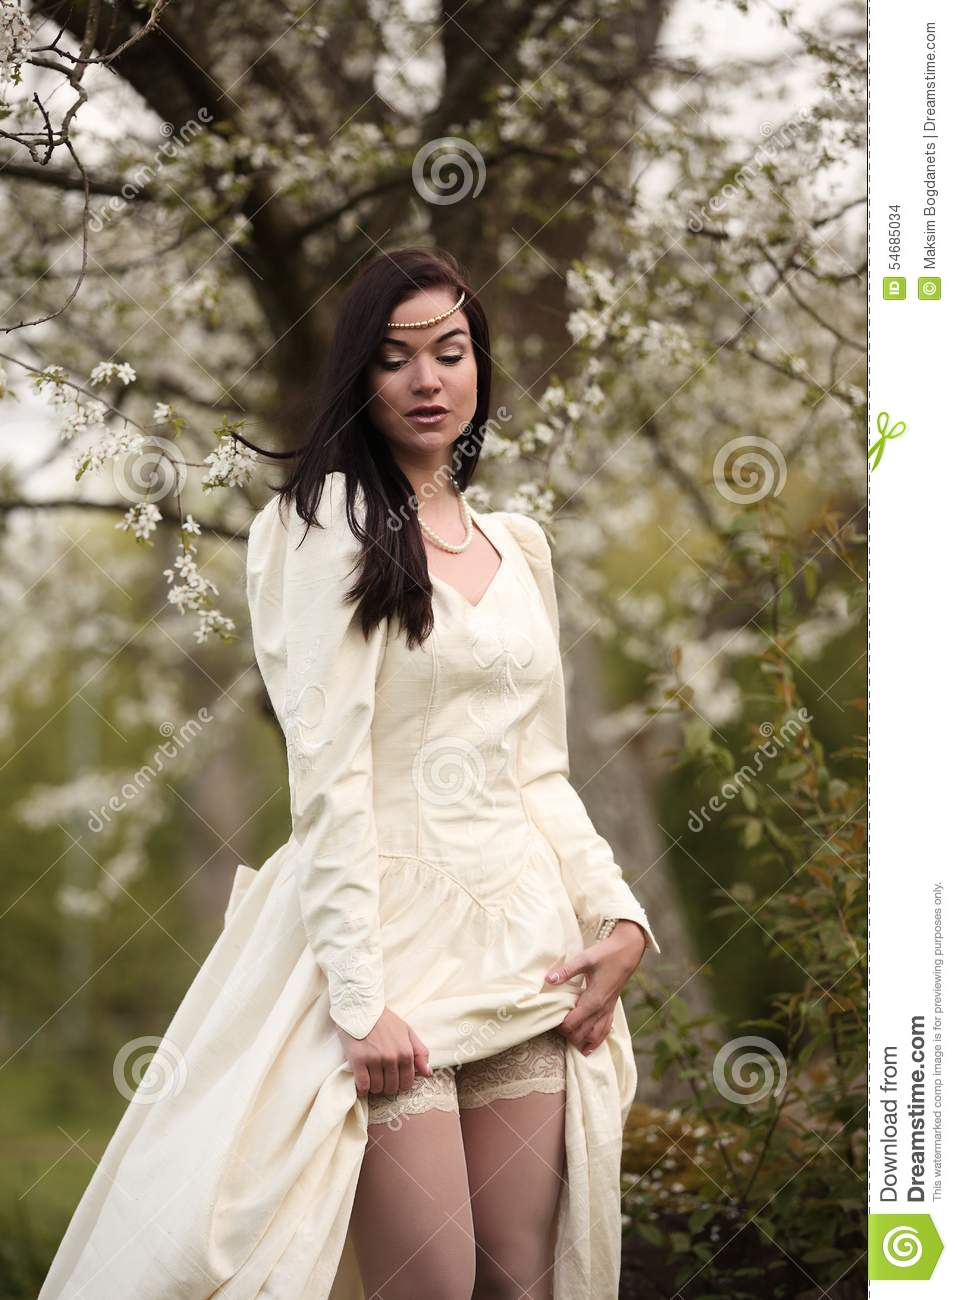 Bride Wedding Dress In Forest Vintage White Tree Stock Photo - Image ...